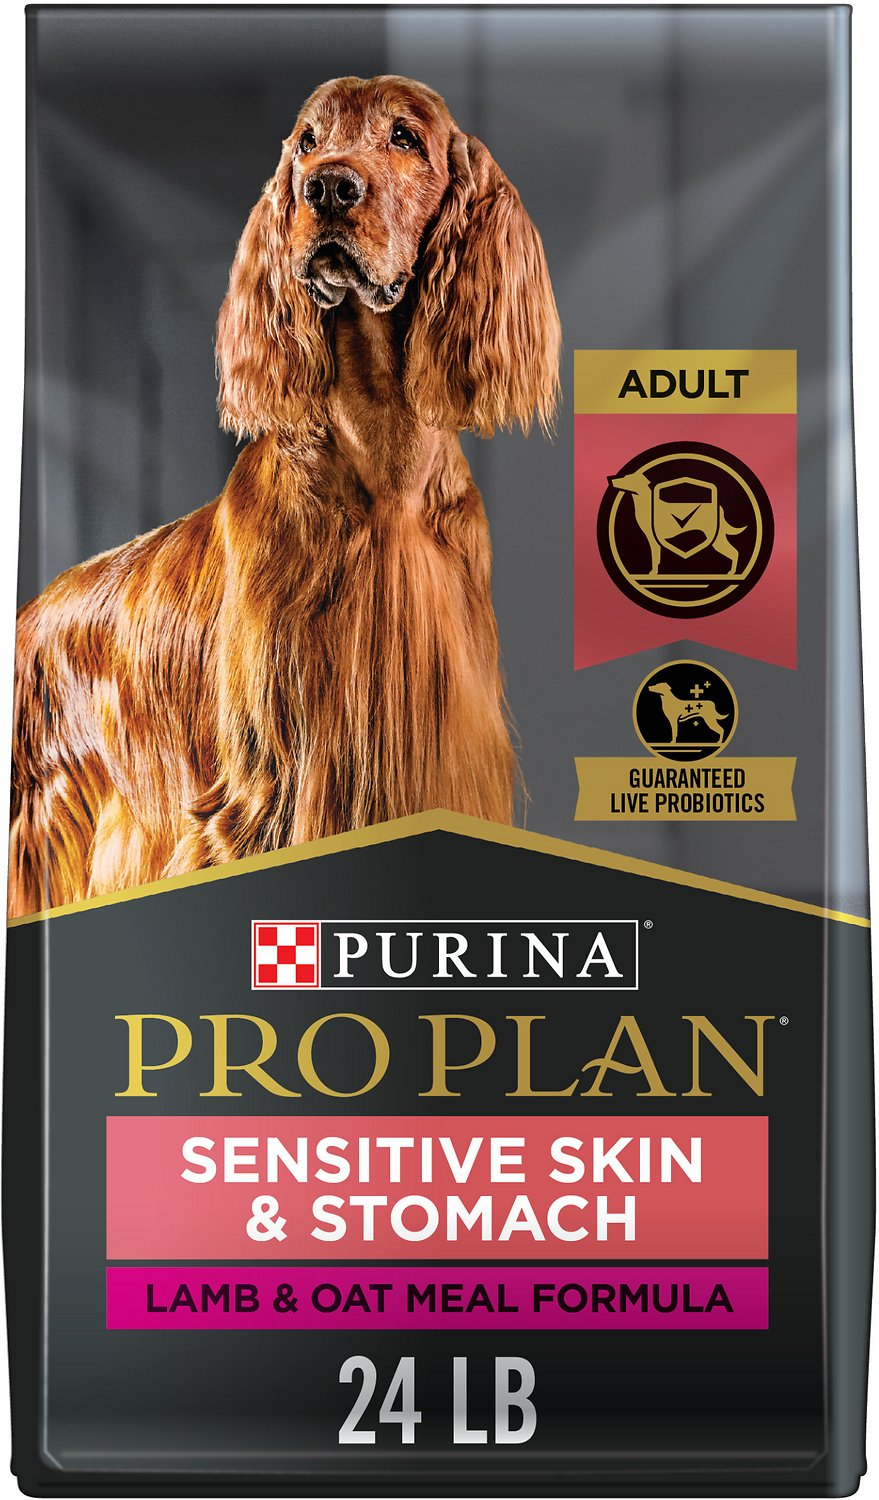 Purina PRO Plan at Chewy